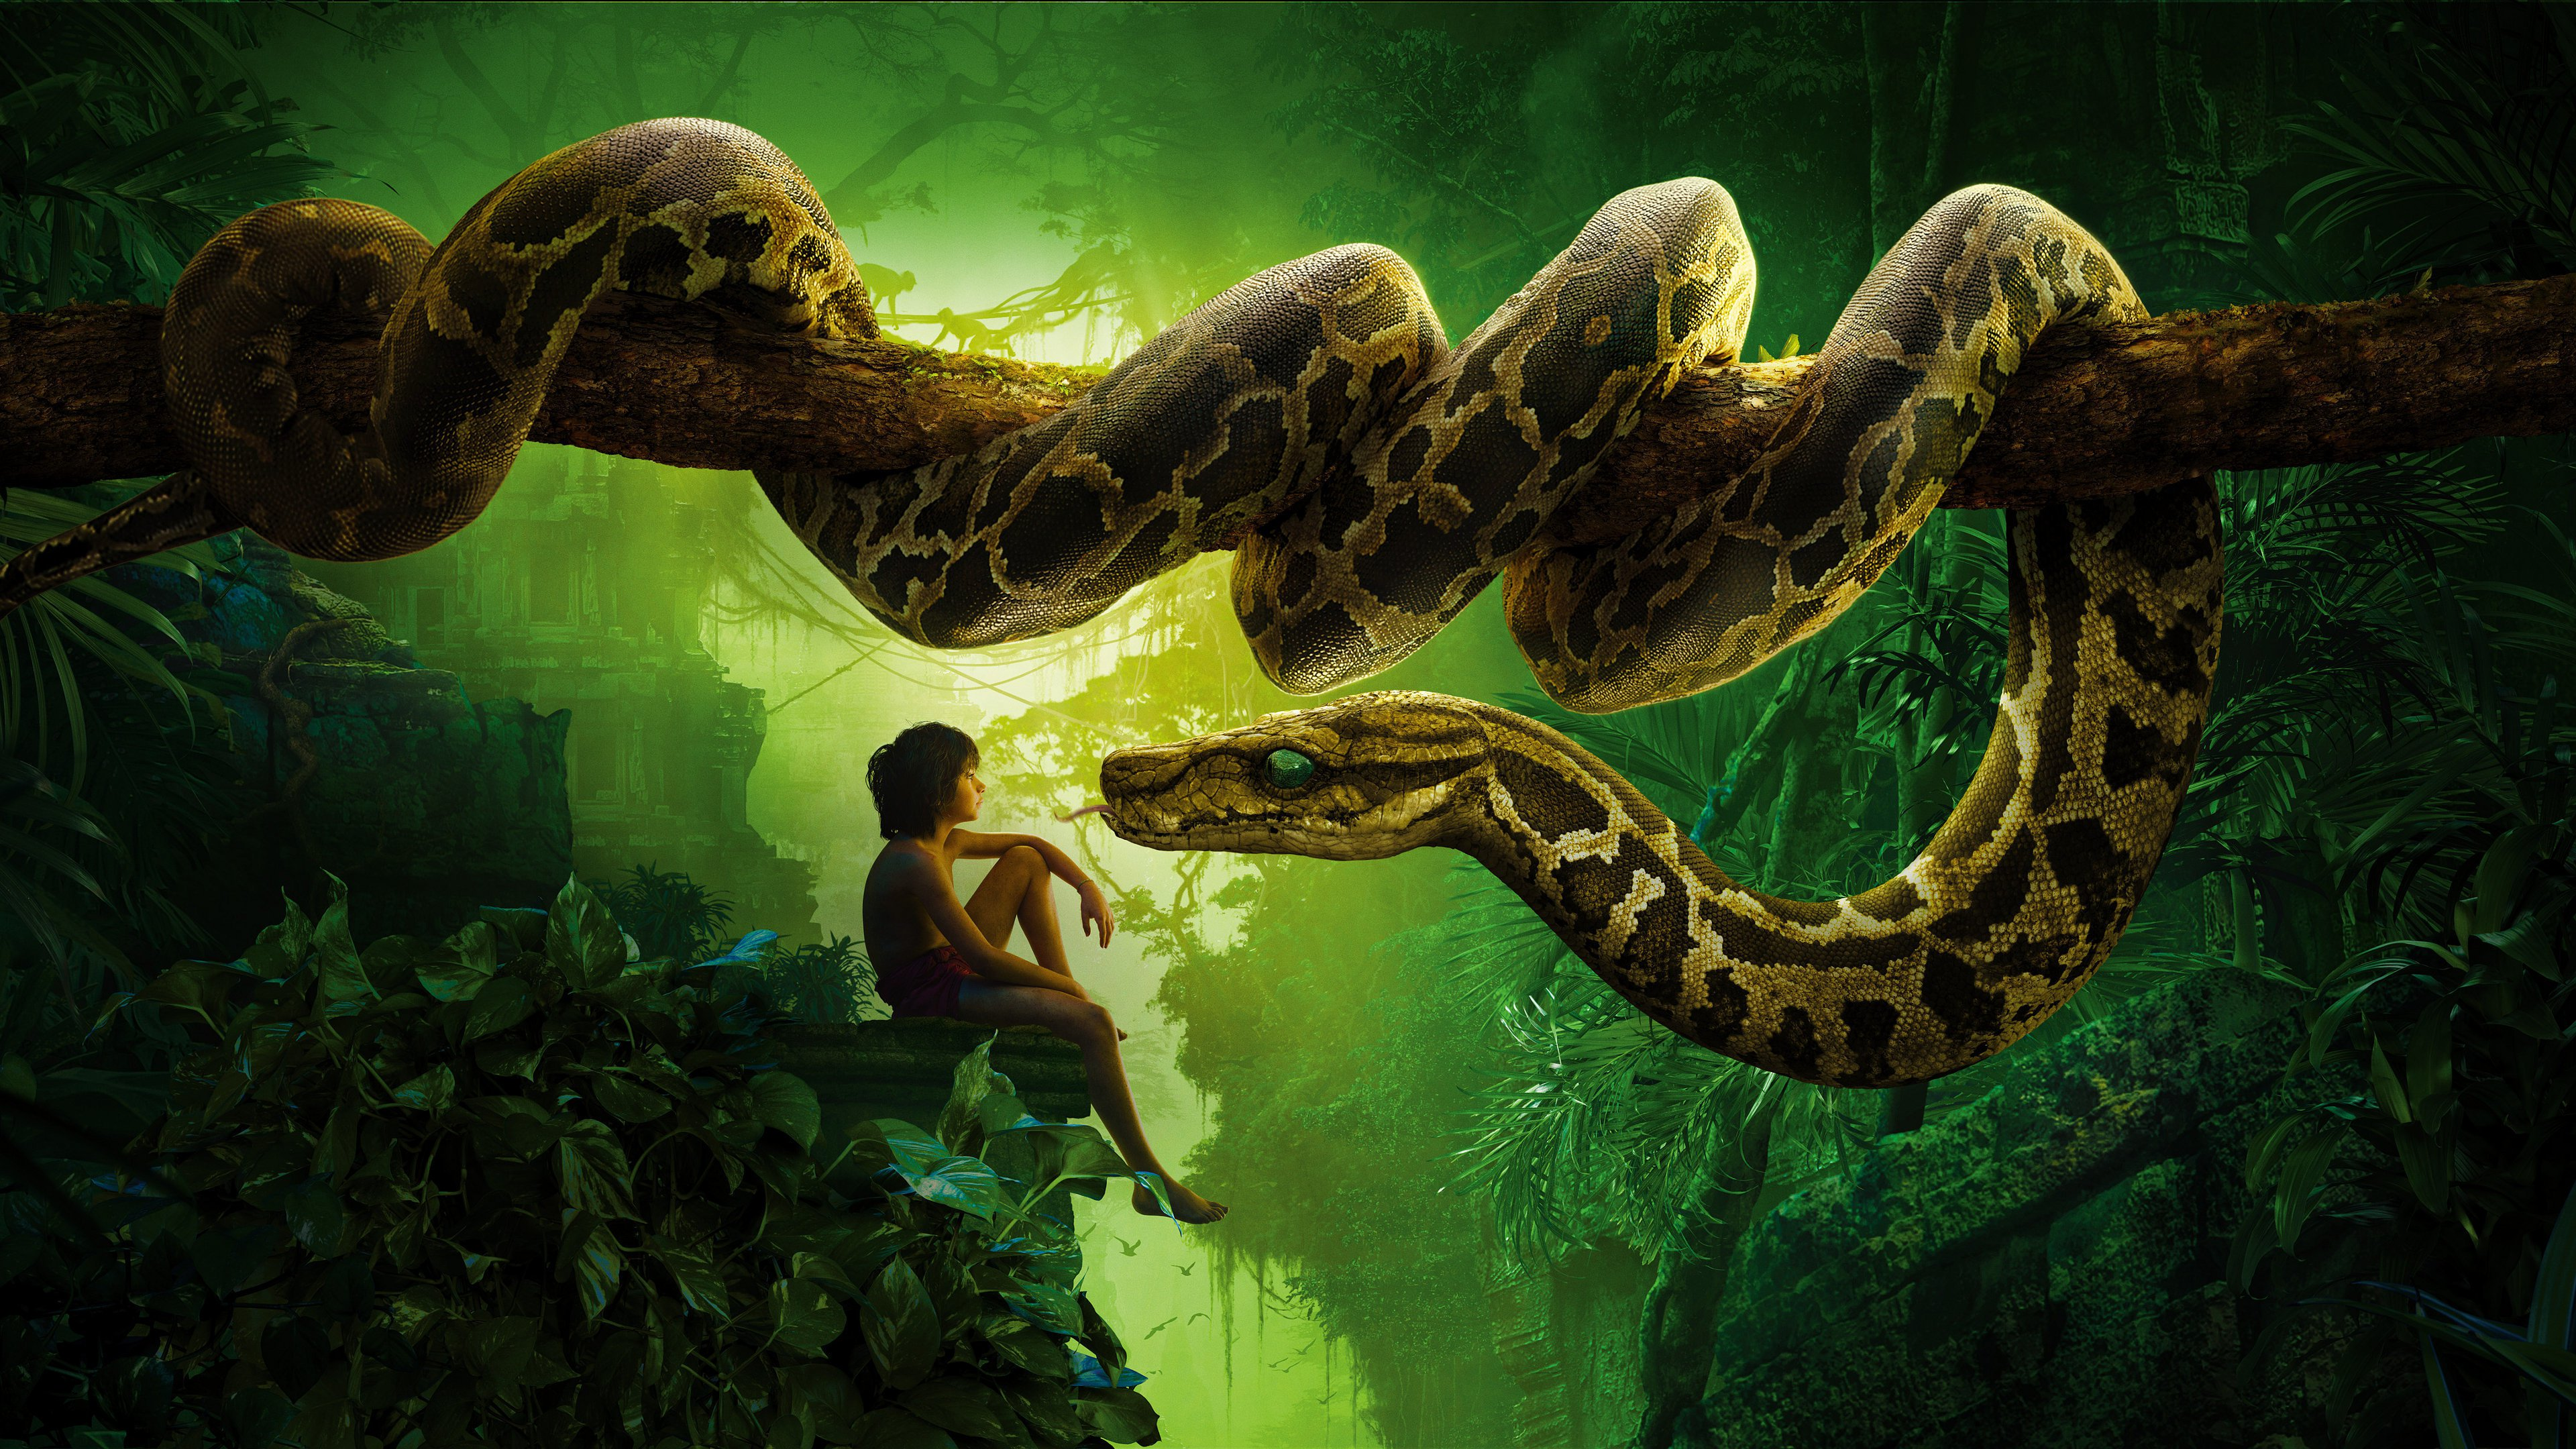 33 The Jungle Book (2016) HD Wallpapers | Backgrounds - Wallpaper